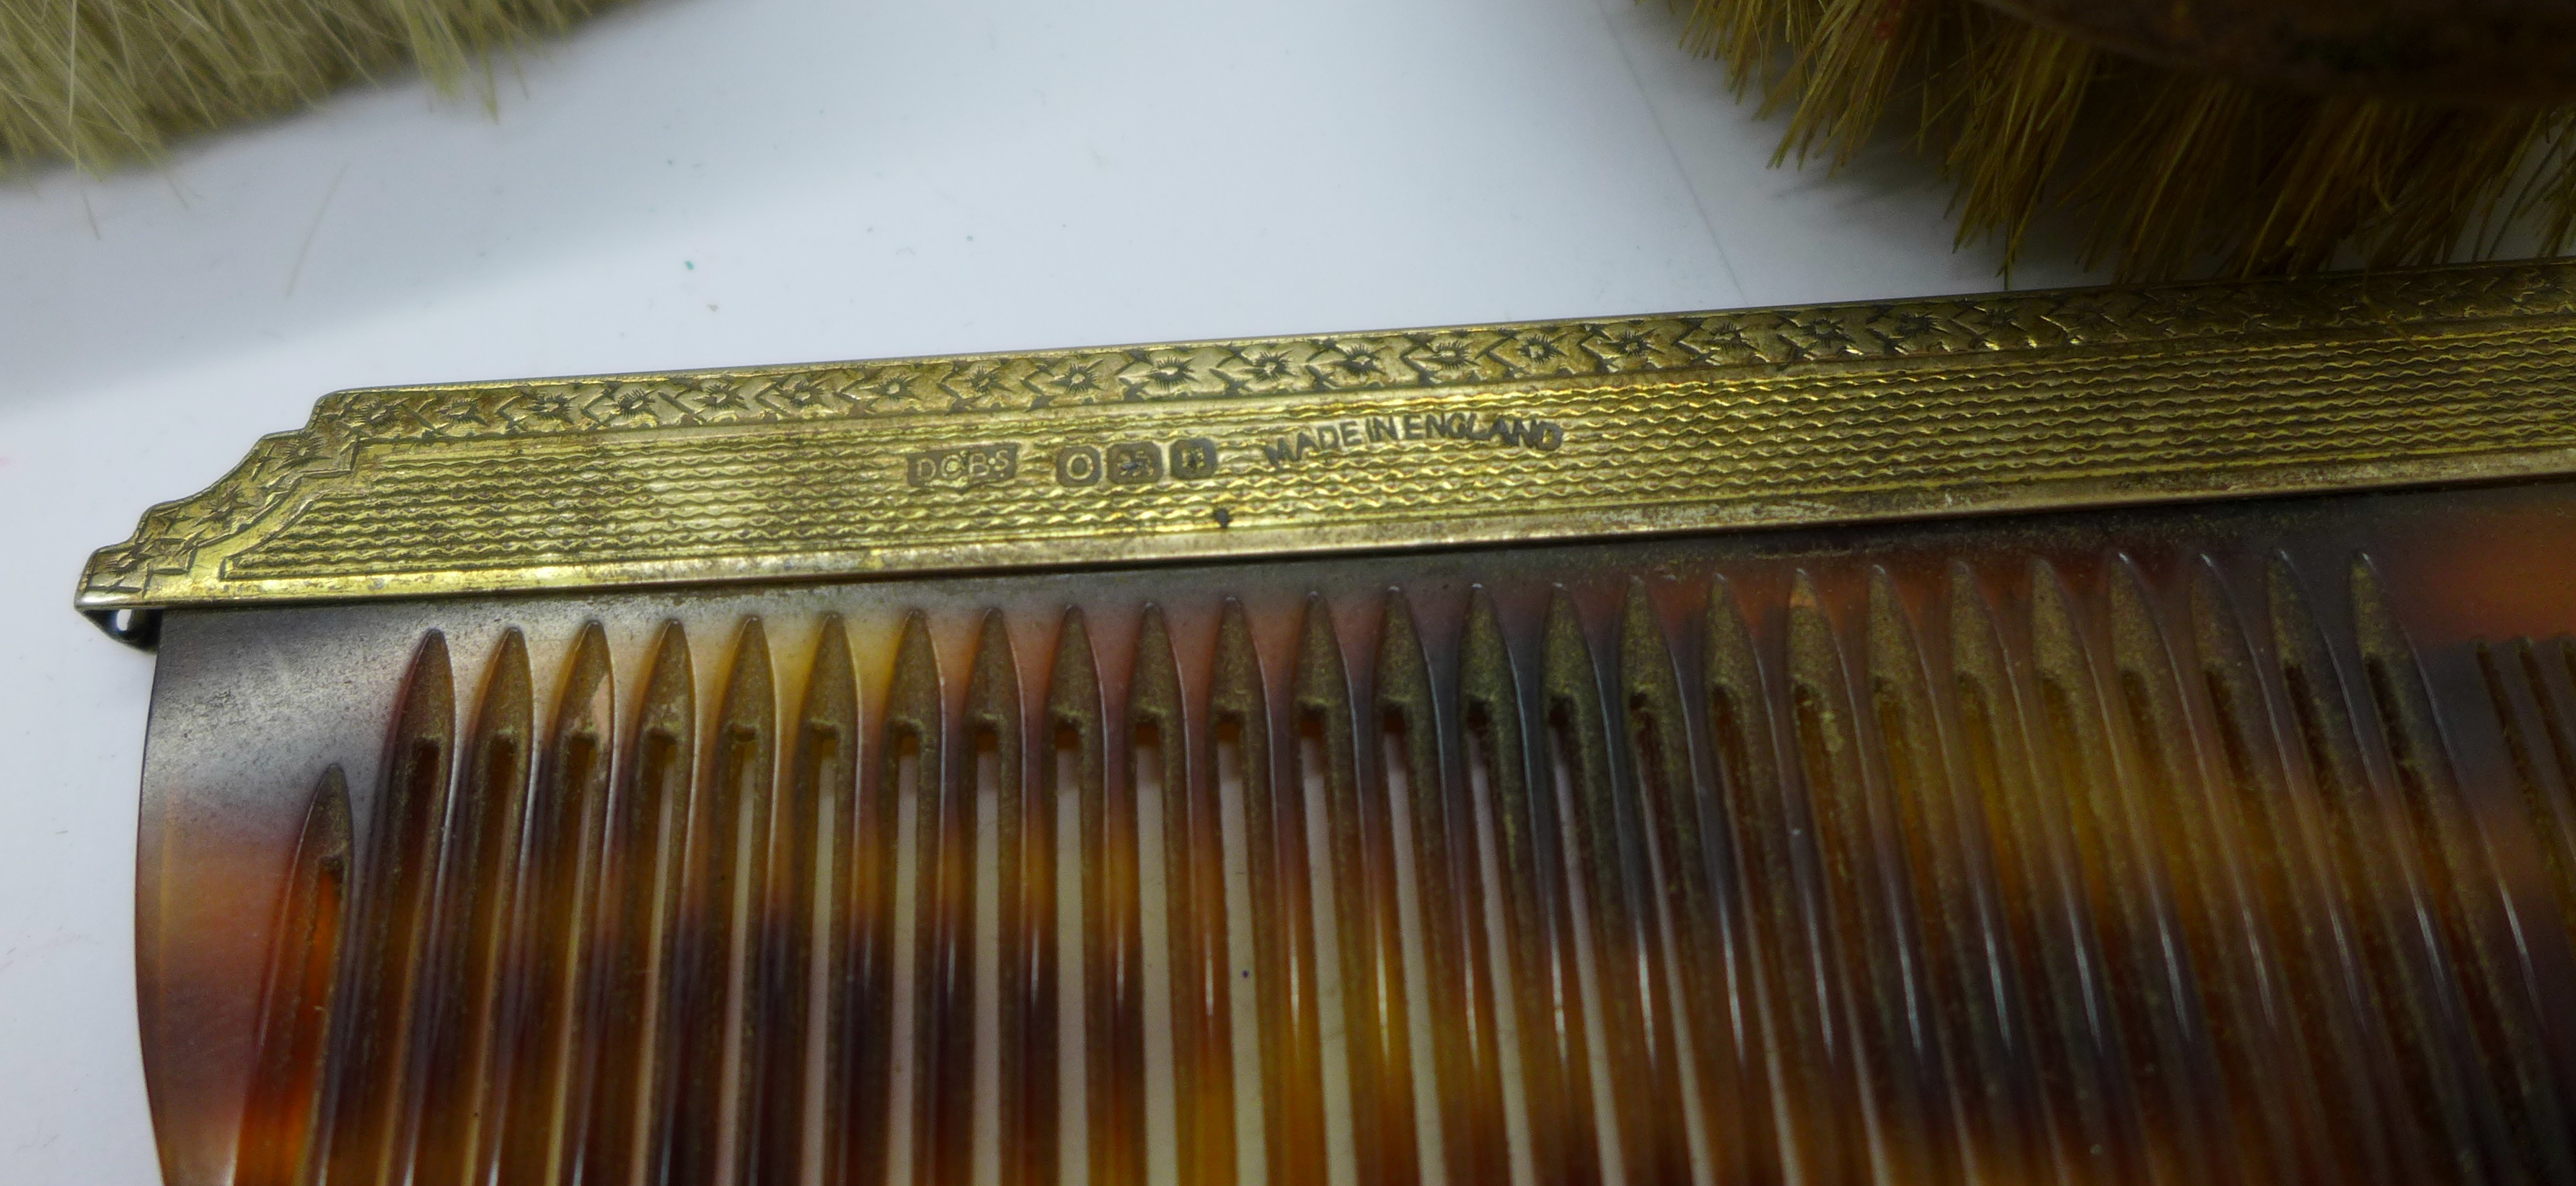 Silver brushes (two cased), comb and a hand mirror - Image 8 of 9